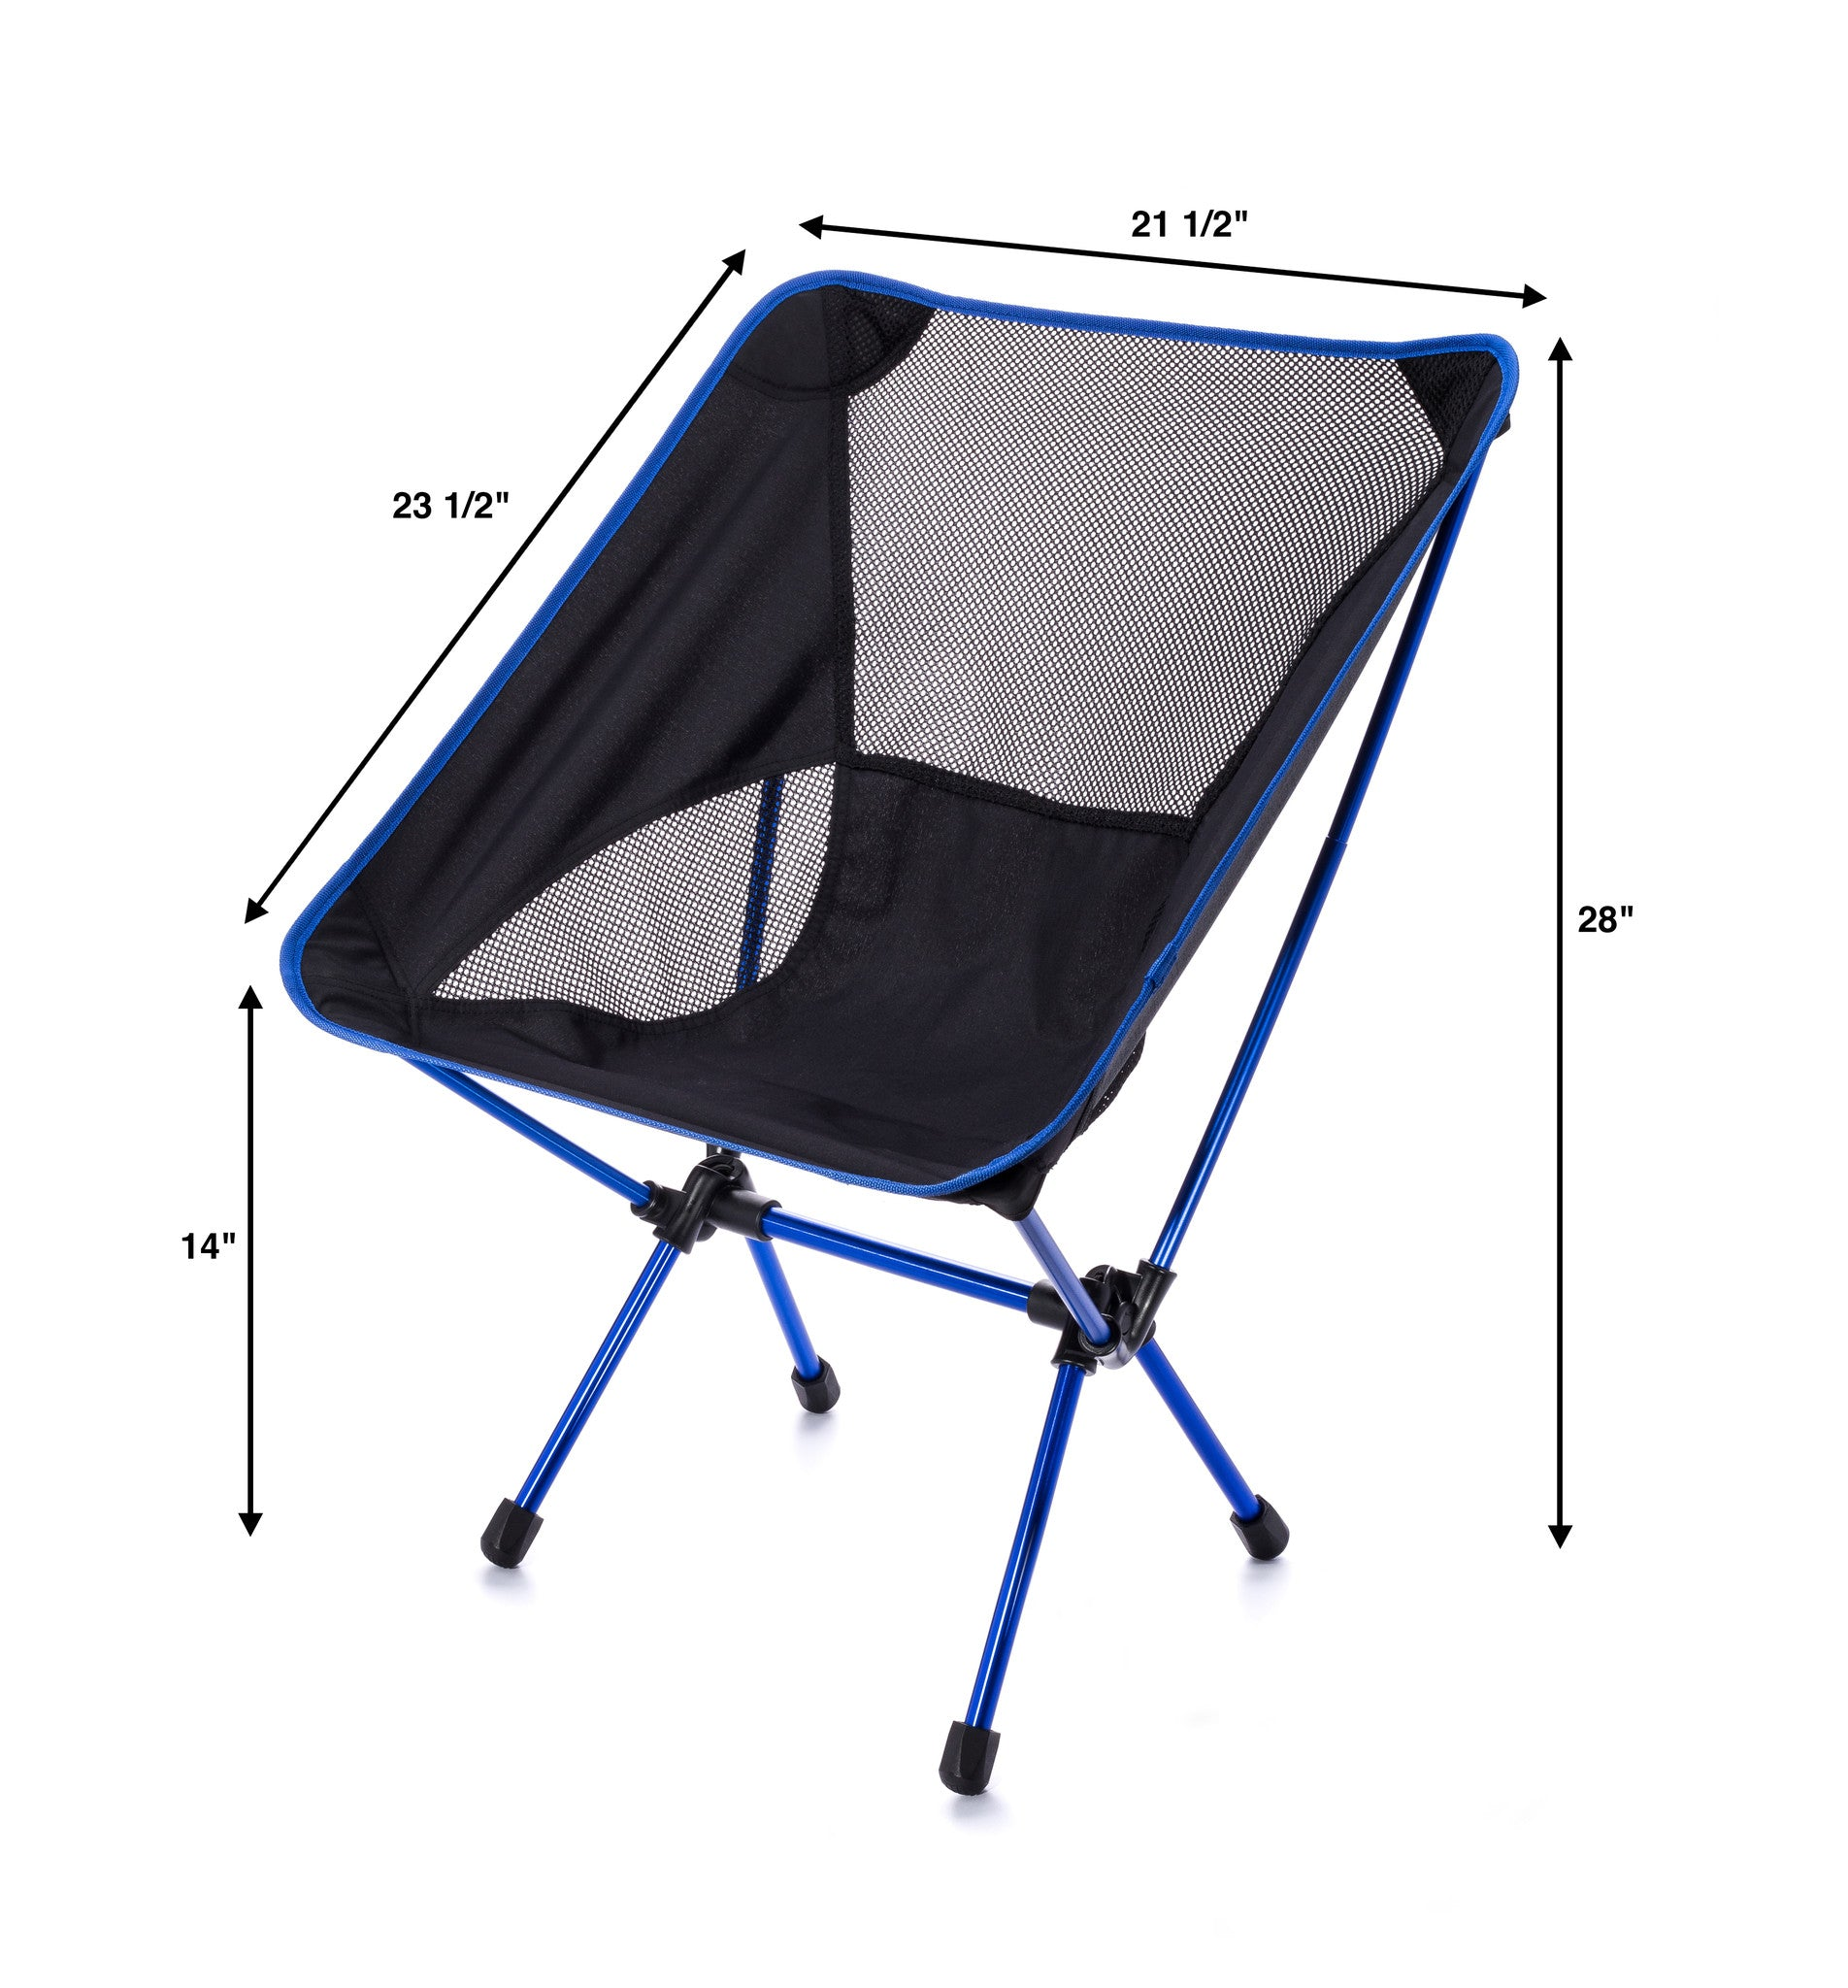 Perfect TrekUltra Camping Fold Up Chairs With Bag   Portable Lightweight Heavy Duty  Compact   Great For Sporting Motorcycling Backpacking Kayaking Outside Chair  For ...